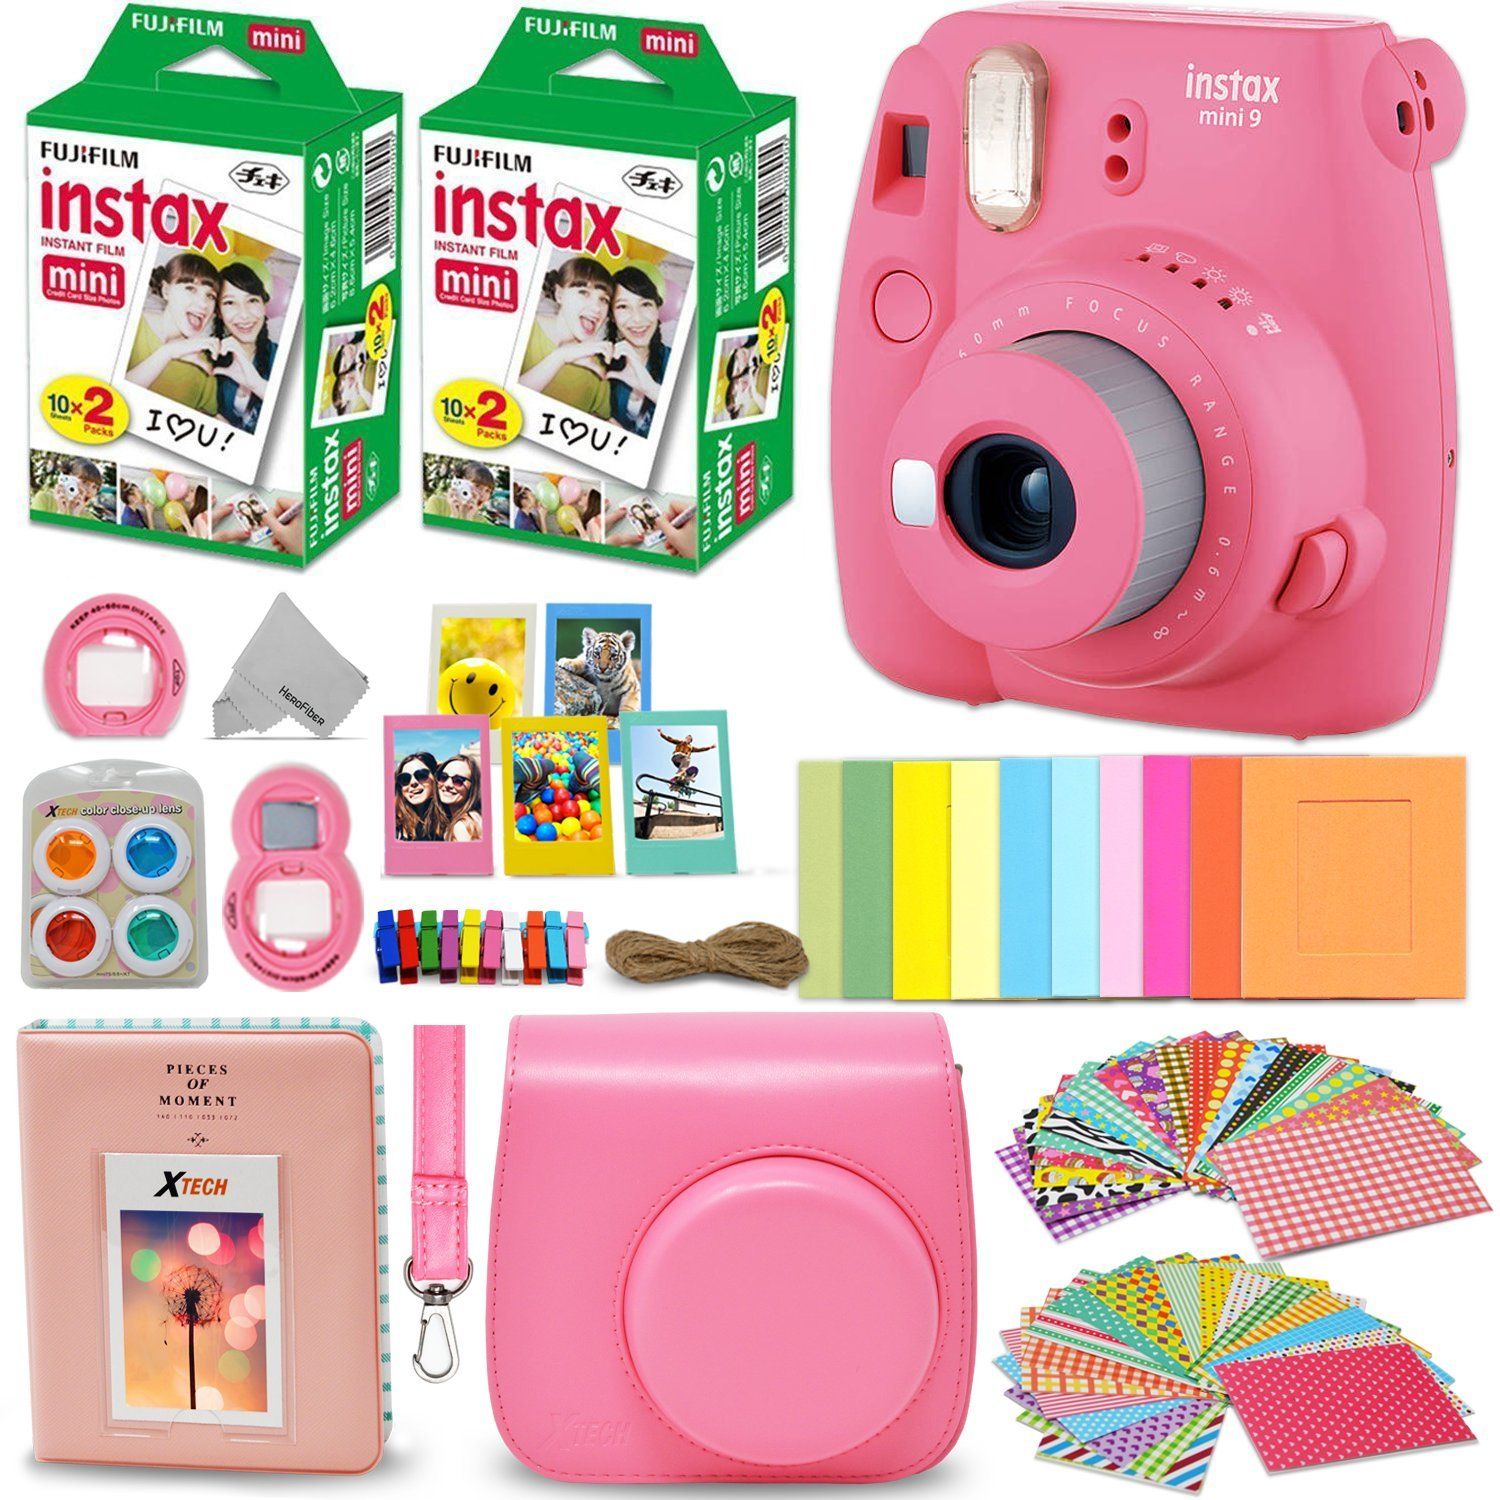 Fujifilm Instax Mini 9 Instant Camera FLAMINGO PINK + Fuji INSTAX Film (40 Sheets) + Accessories Kit Bundle + Custom Case with Strap + Assorted Frames + Photo Album + 60 Colorful Sticker Frames + MORE by HeroFiber